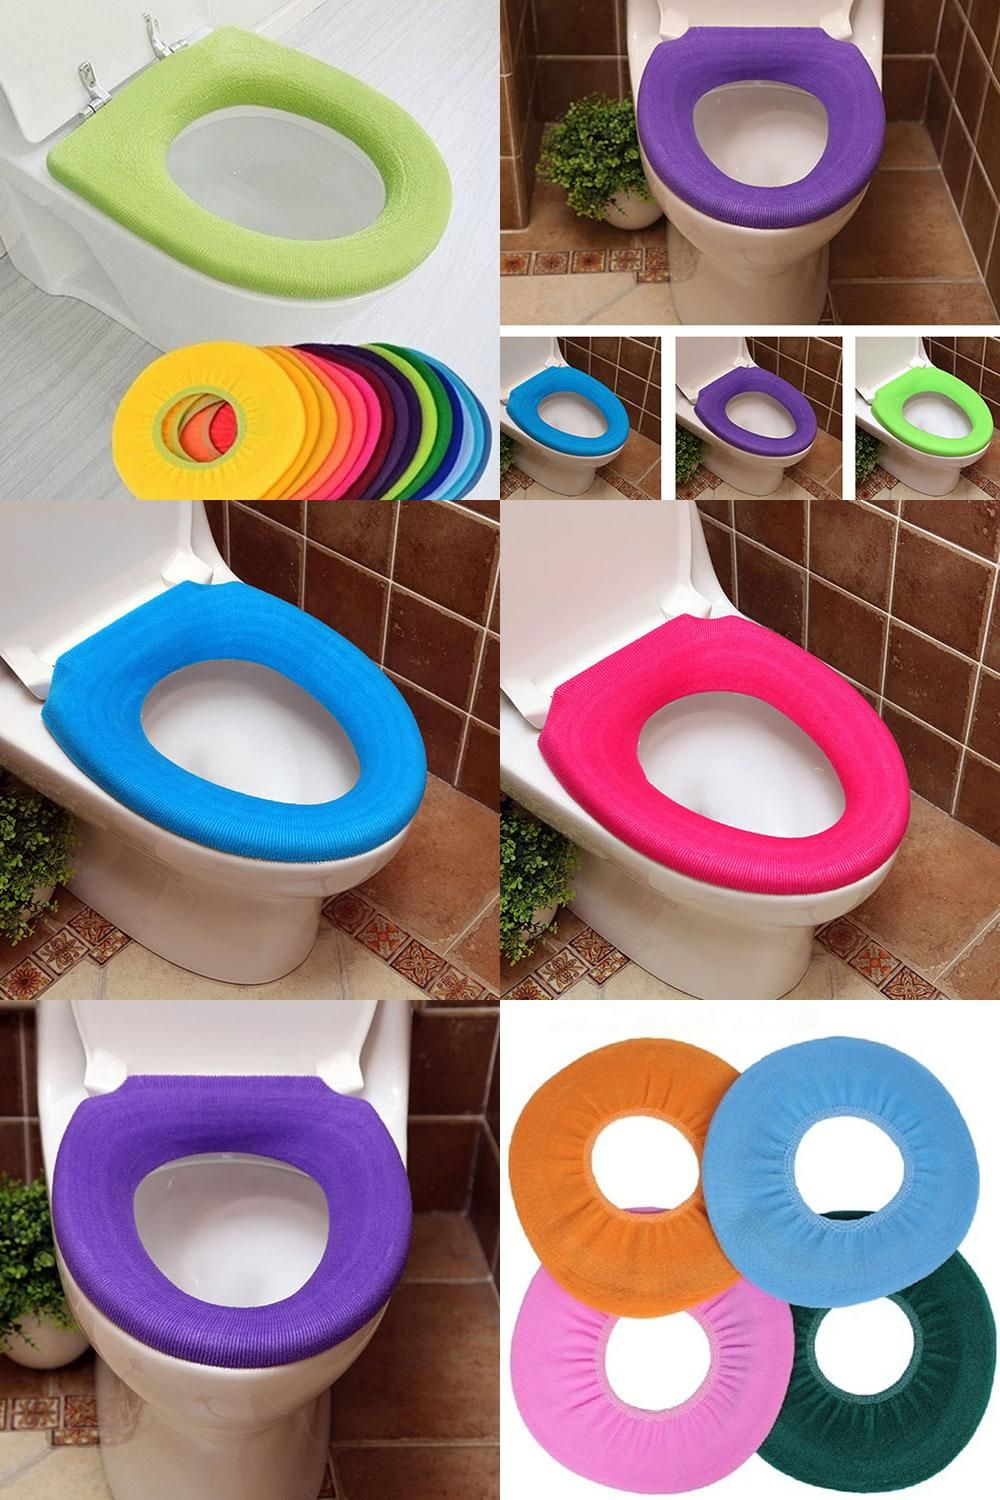 Visit To Buy Home Bathroom Decoration Pure Color Warm Toilet Washable Seat Cover Pad Cushion Advertisement Pad Cover Bathroom Decor Pure Products